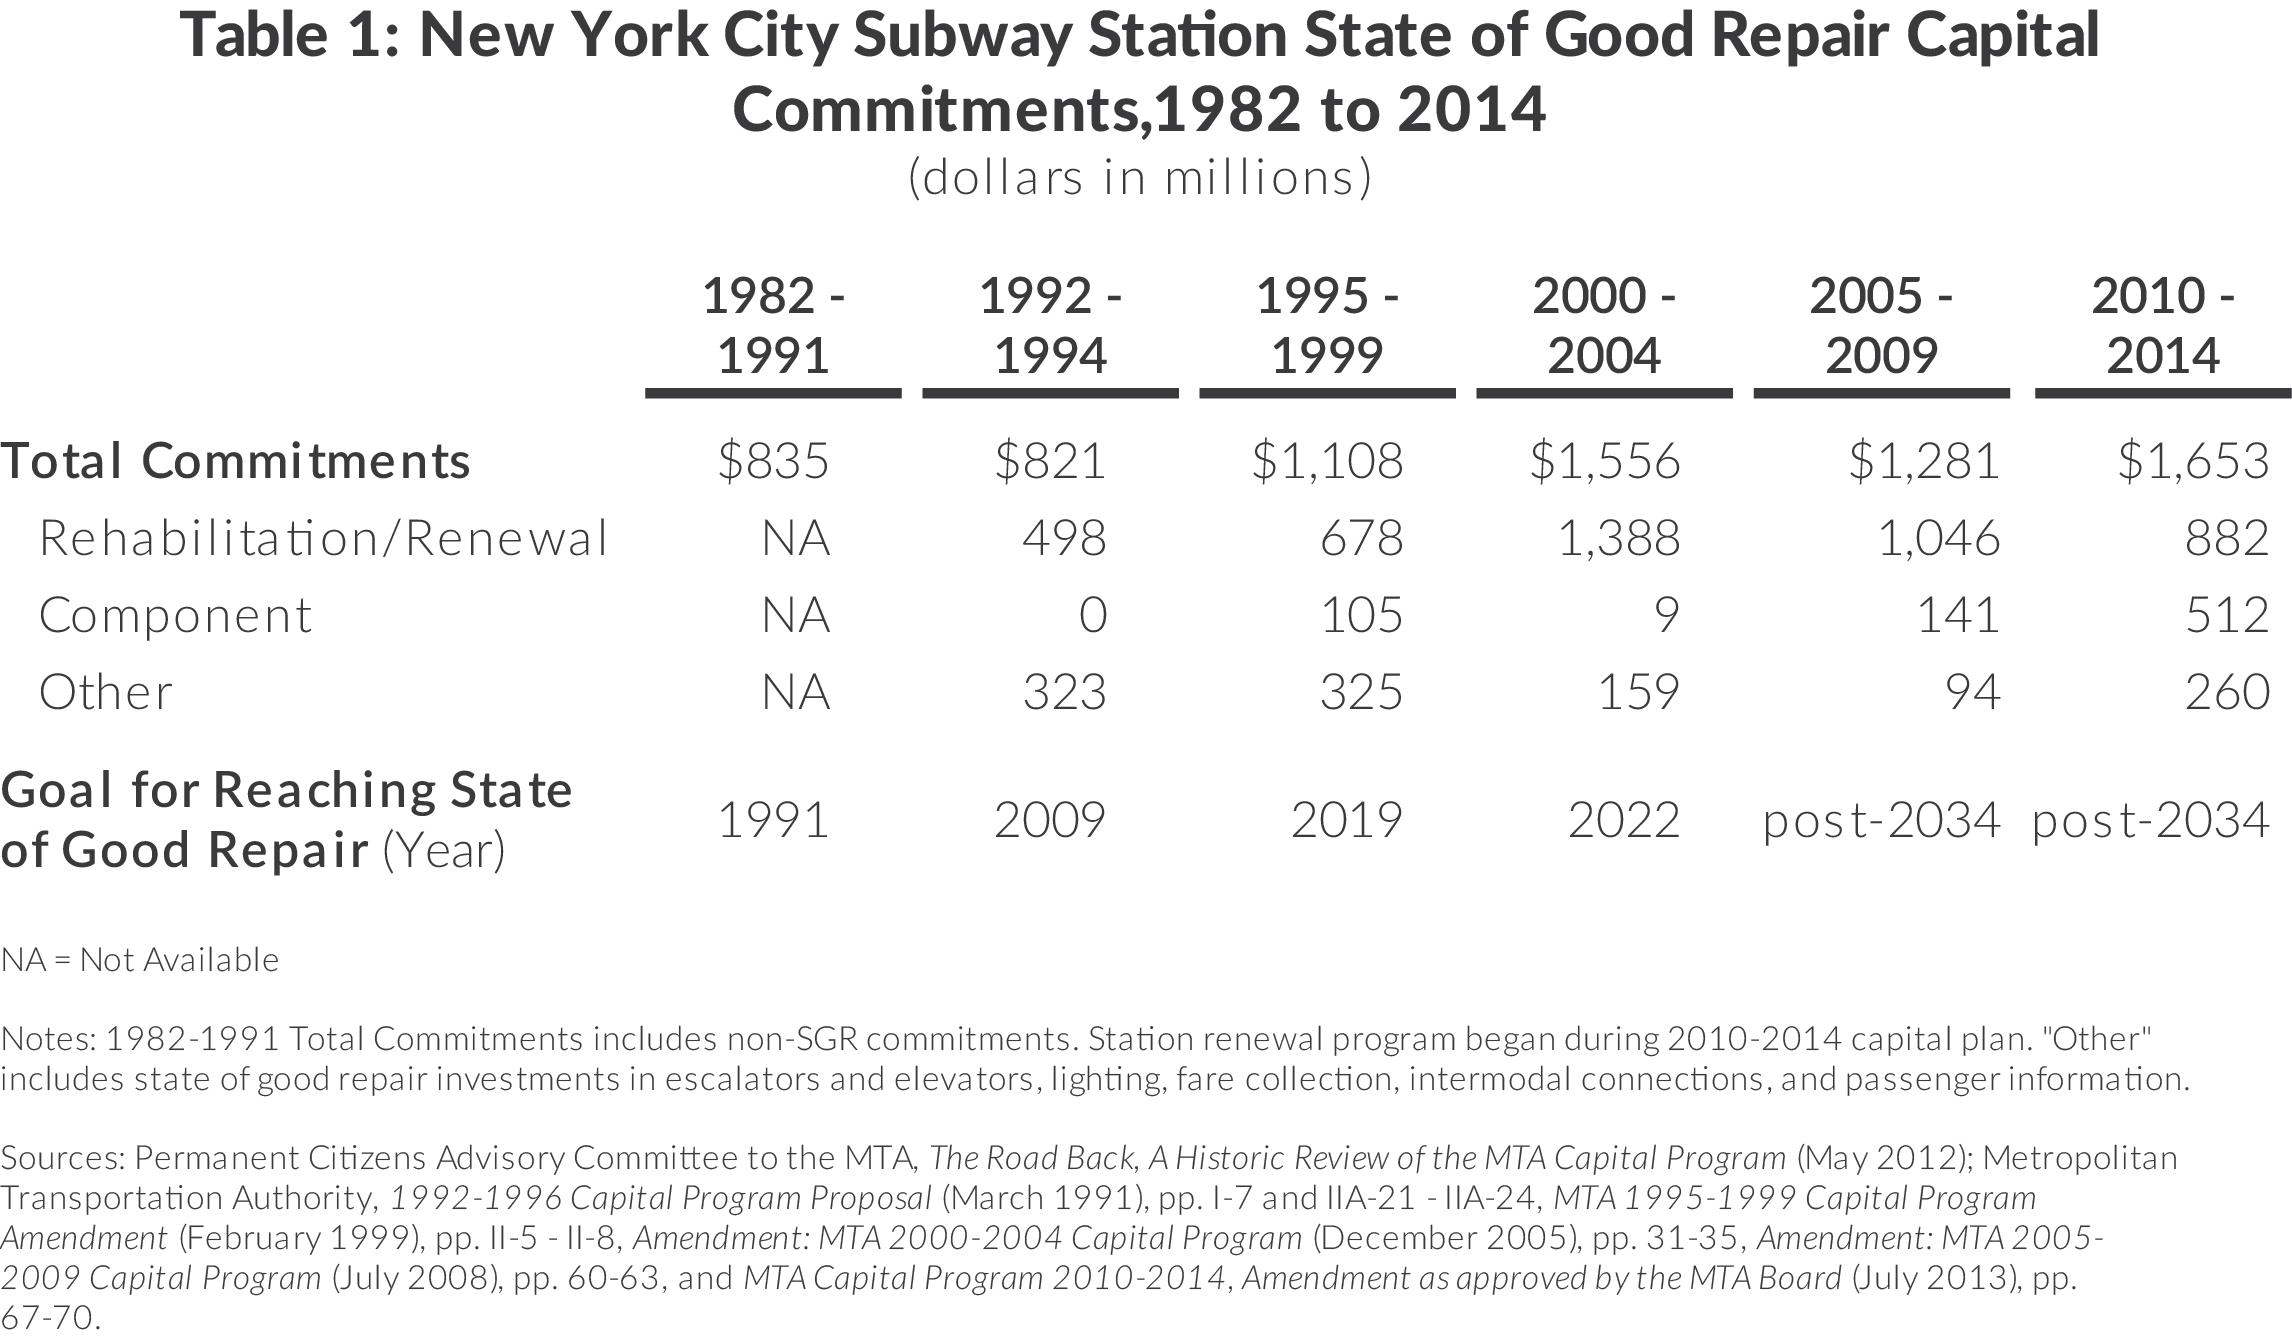 Table showing capital investments in New York City Subway Stations from 1982 to 2014.